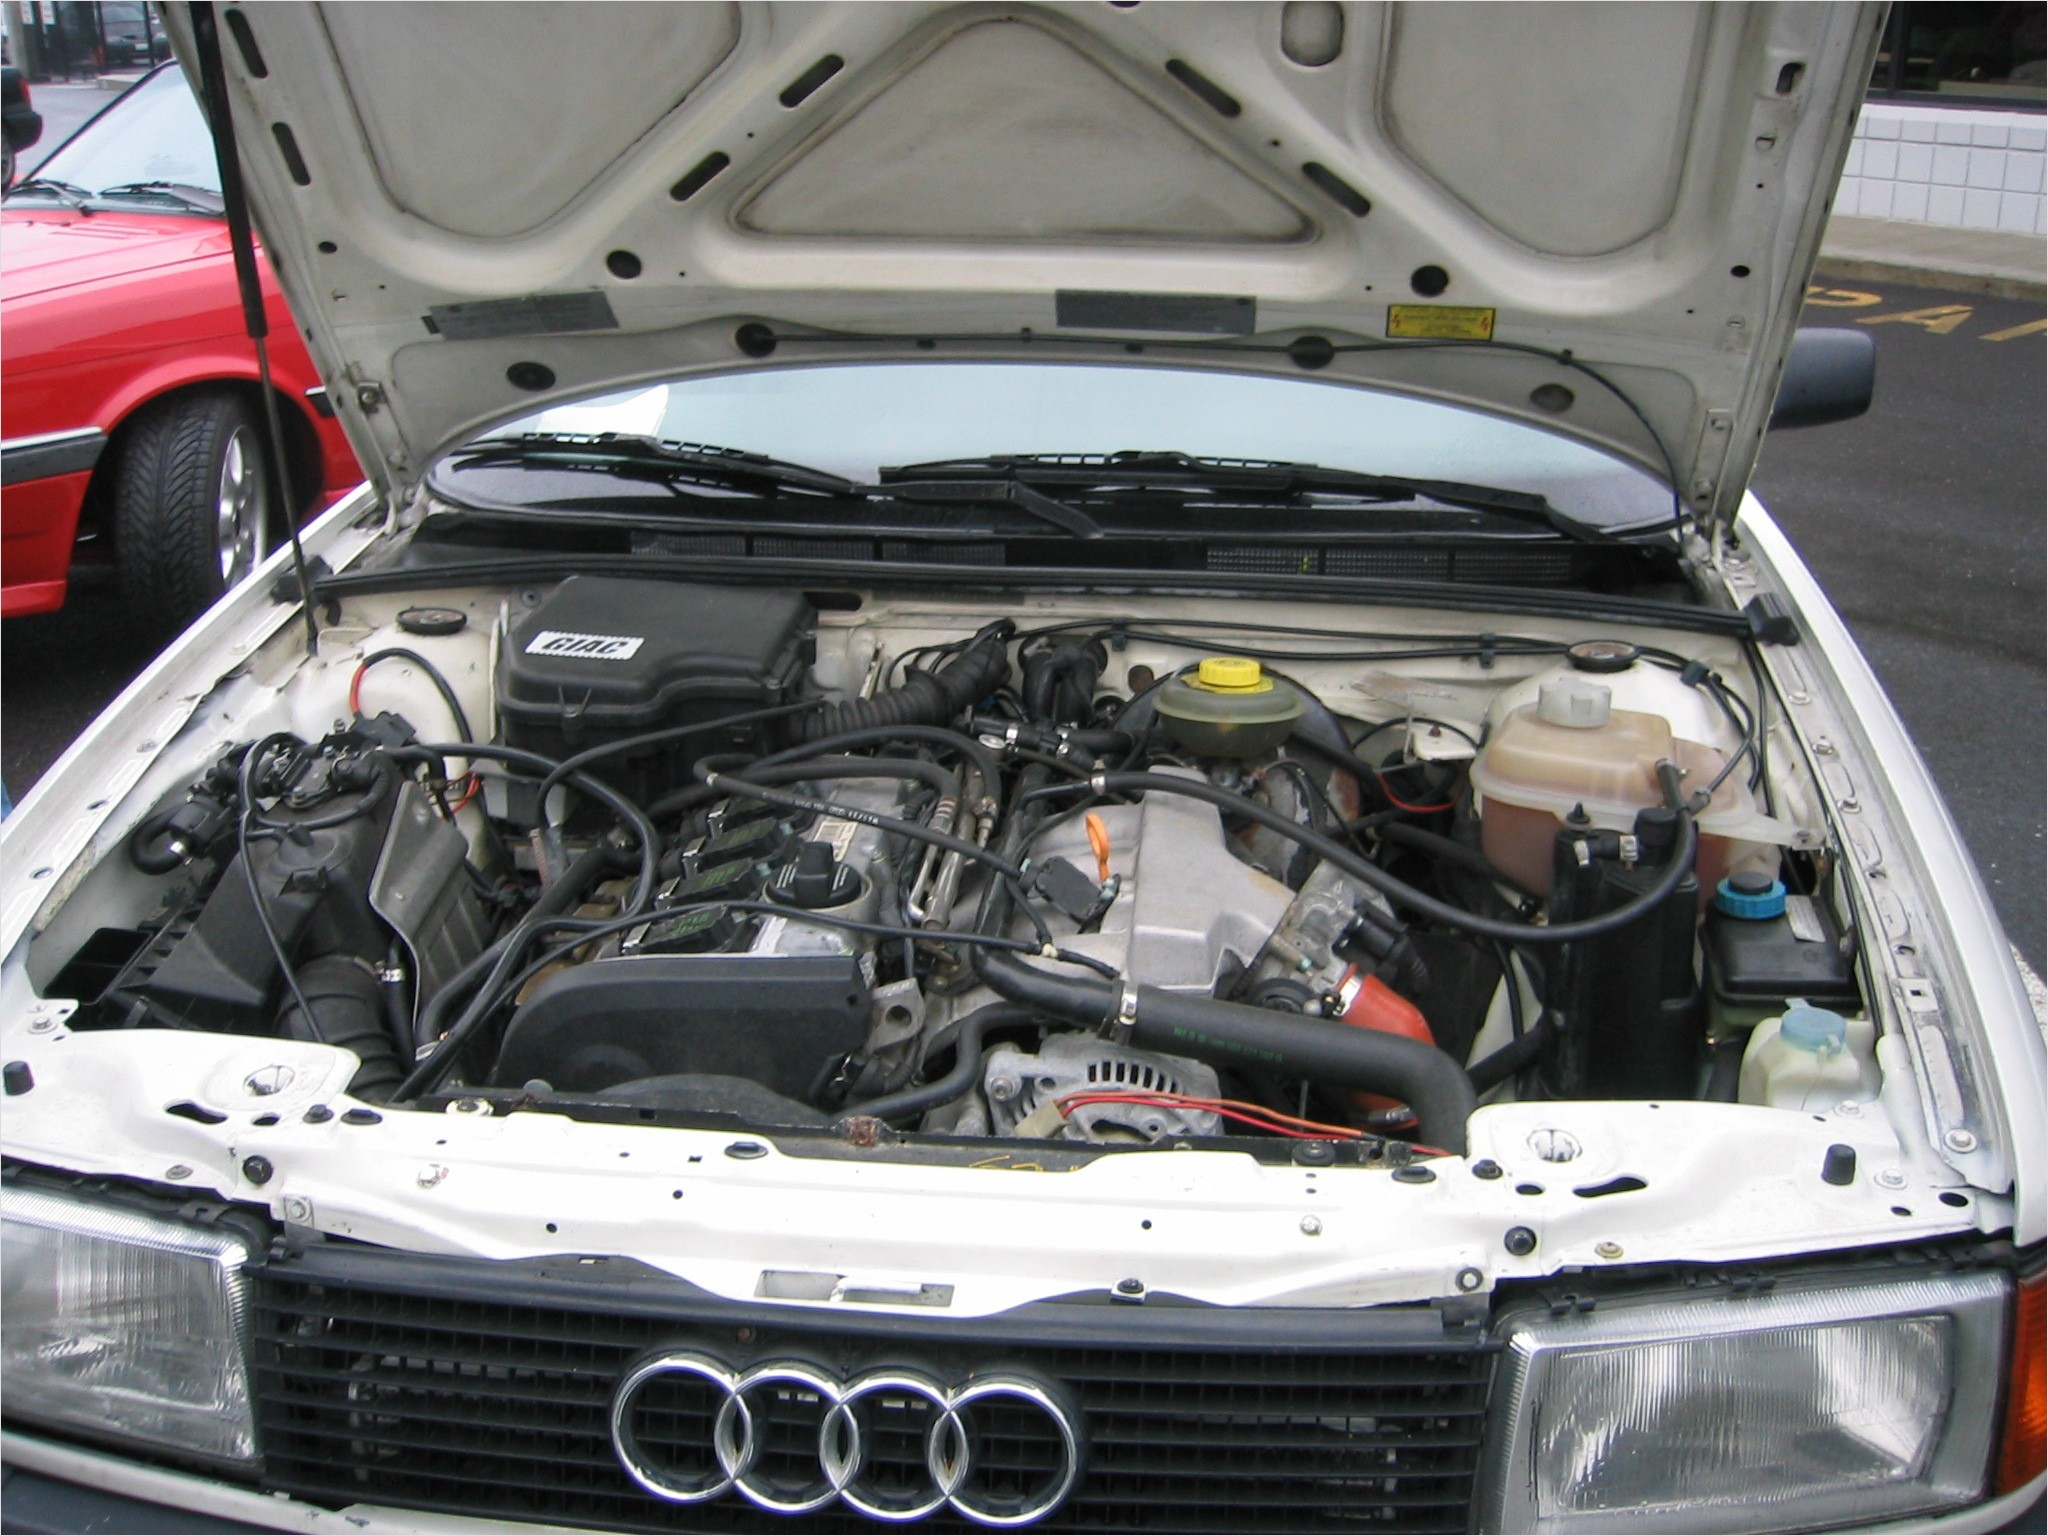 Audi 1 8 T Engine Diagram Cool Review About Audi 1 8t Engine with Amusing Gallery Of Audi 1 8 T Engine Diagram